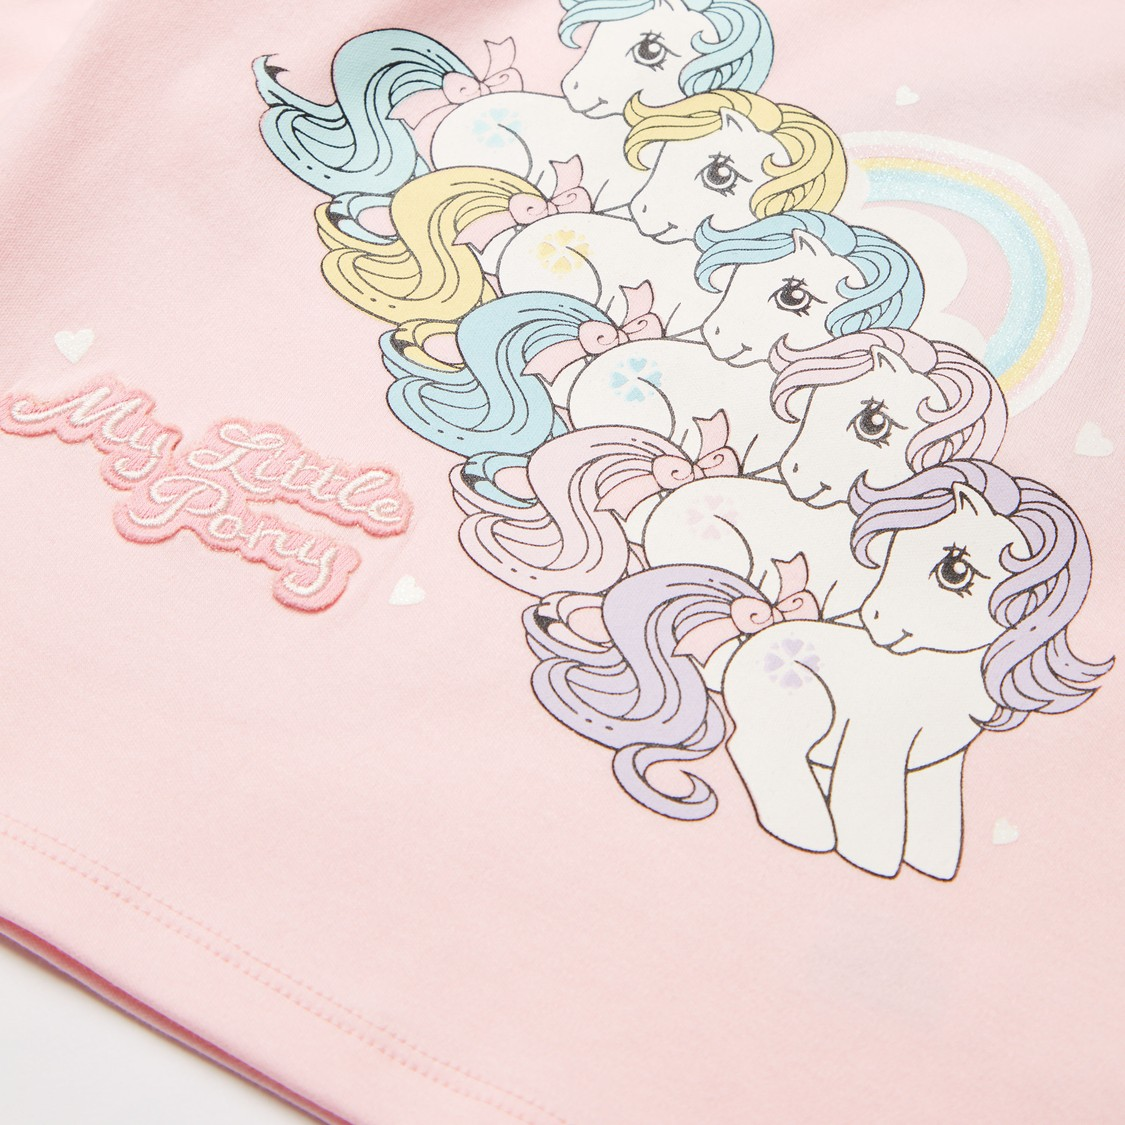 My Little Pony Graphic Print T-shirt and All-Over Print Pyjama Set